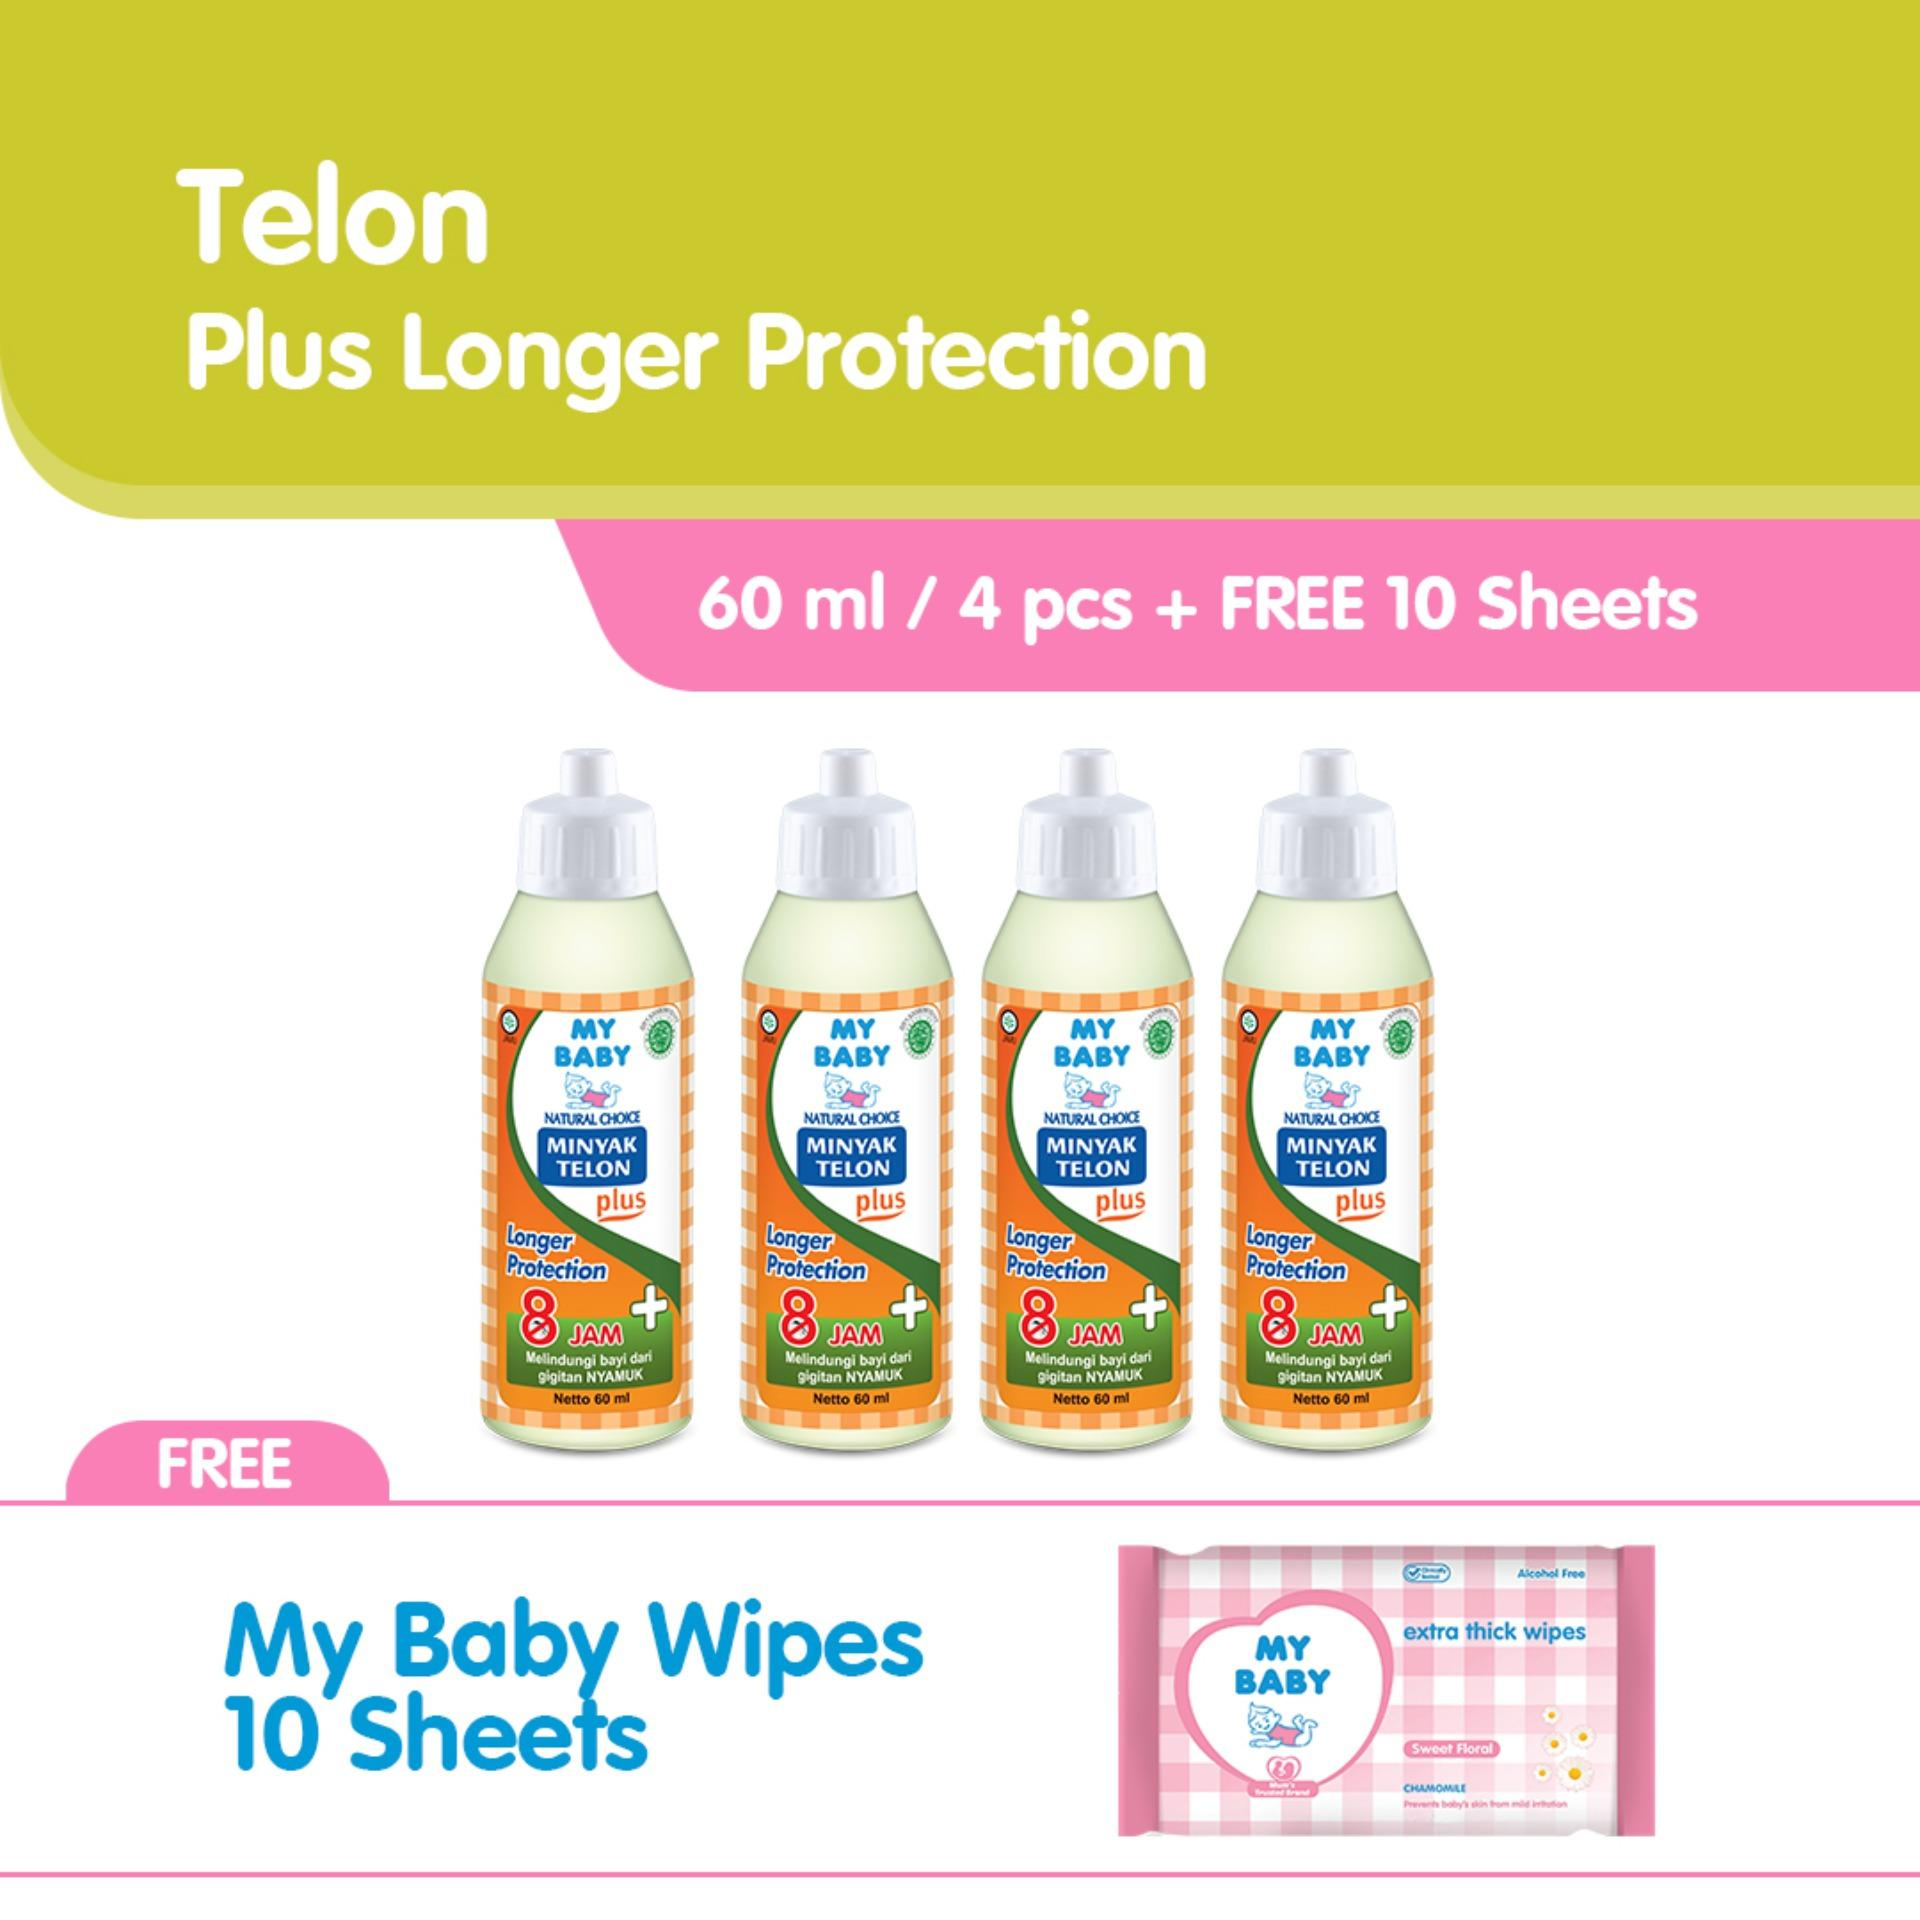 My Baby Minyak Telon Longer Protection 90 Ml Produk Terbaik Wiki Harga Purekids Aise Belly 60ml Free Tissue Basah Plus 60 Isi